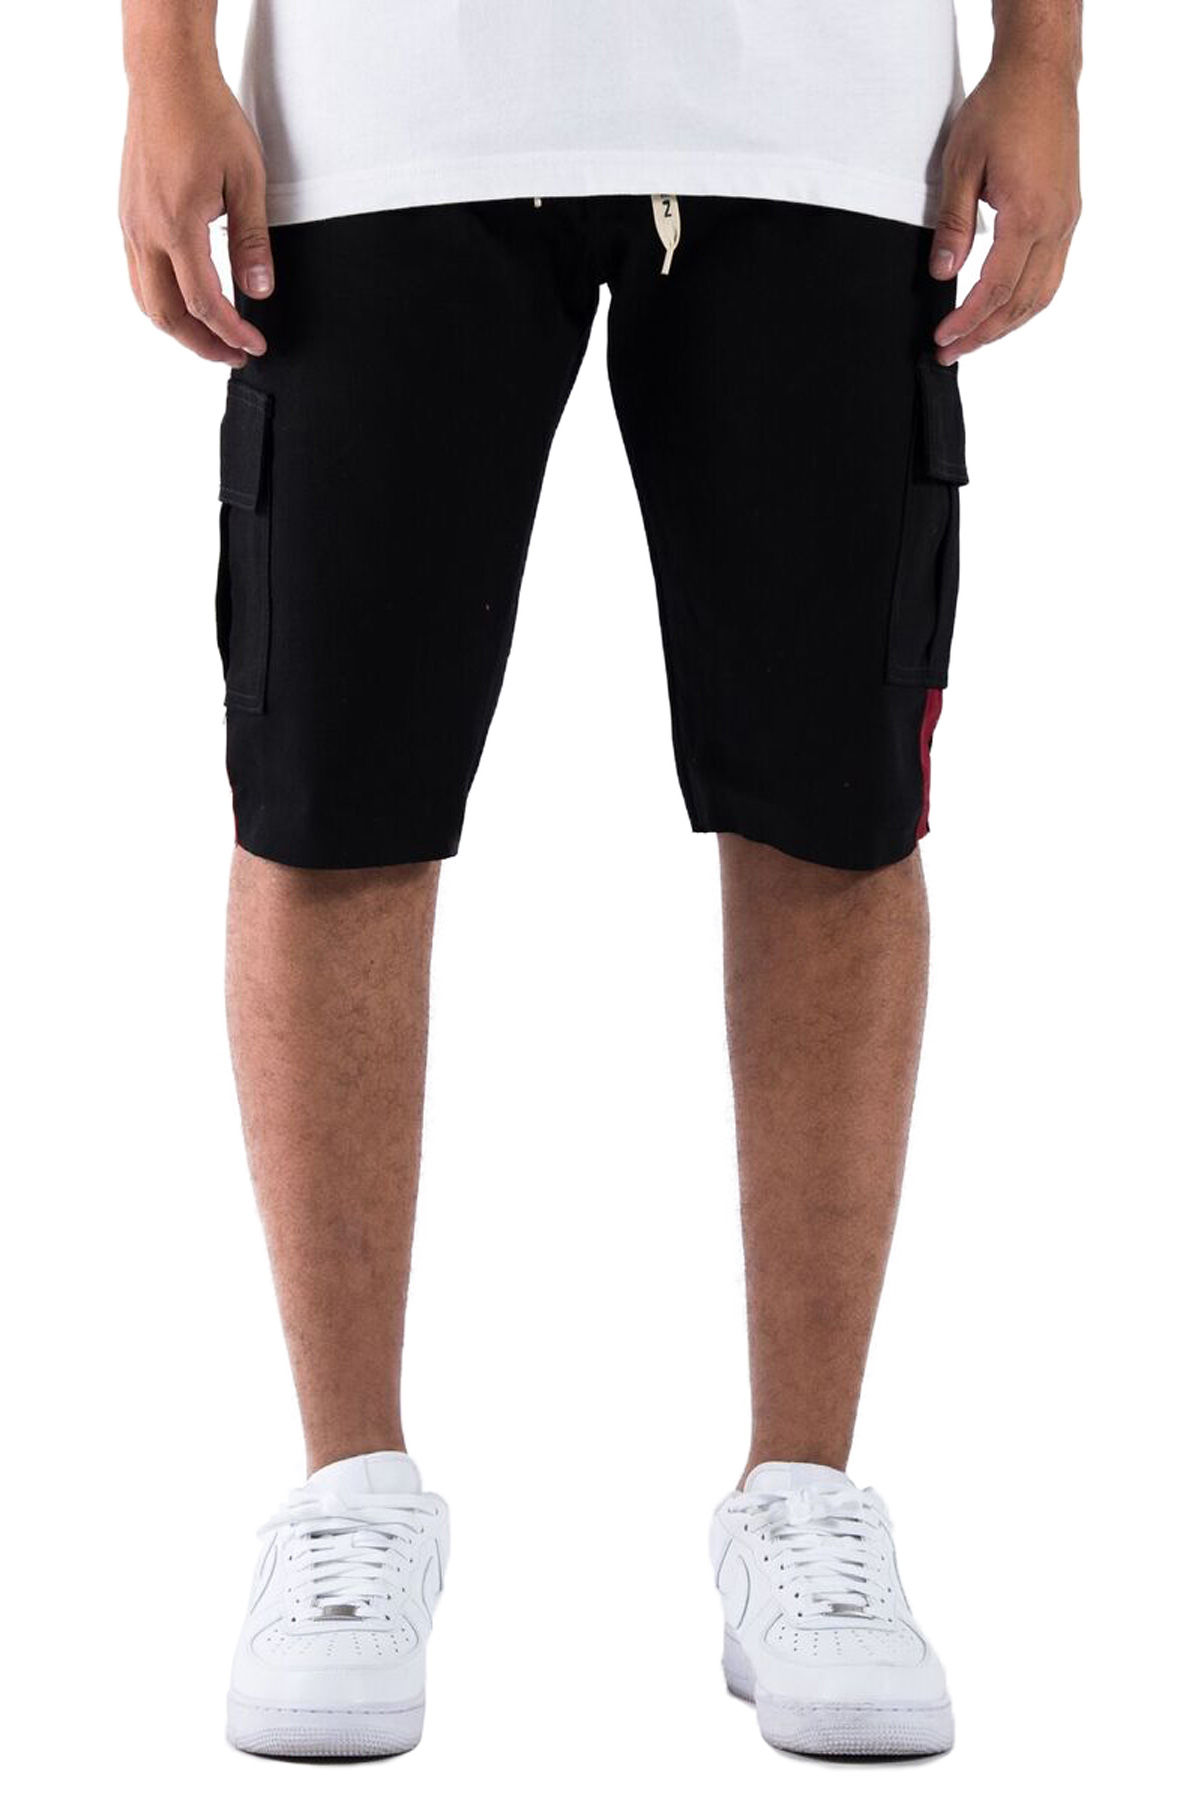 The Union Challenger Cargo Shorts in Black and Burgundy